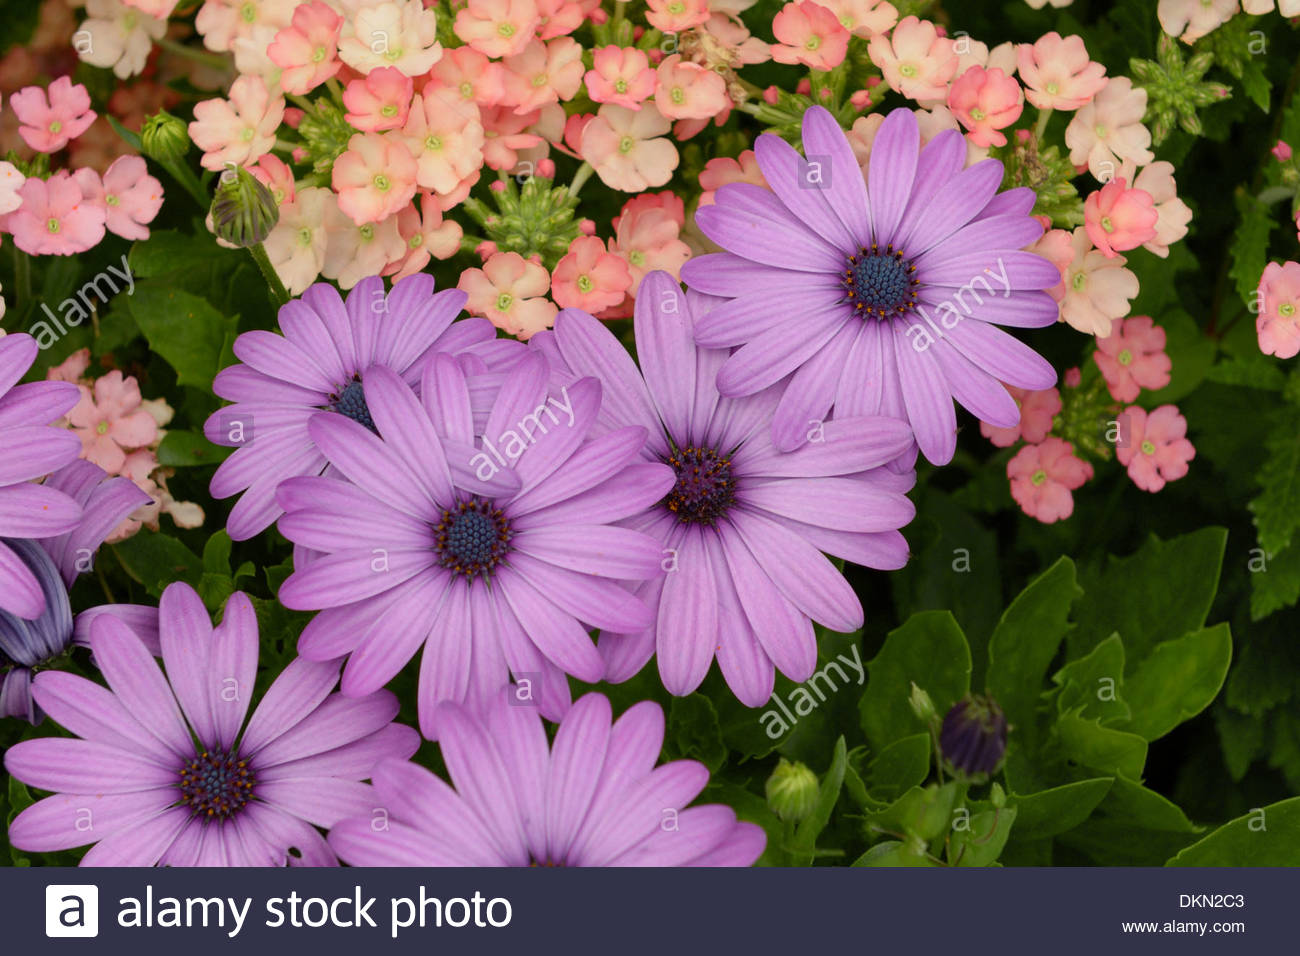 Daisy like composite flowers stock photos daisy like composite a collection of african daisies also known as sunflower daisy or by its scientific name izmirmasajfo